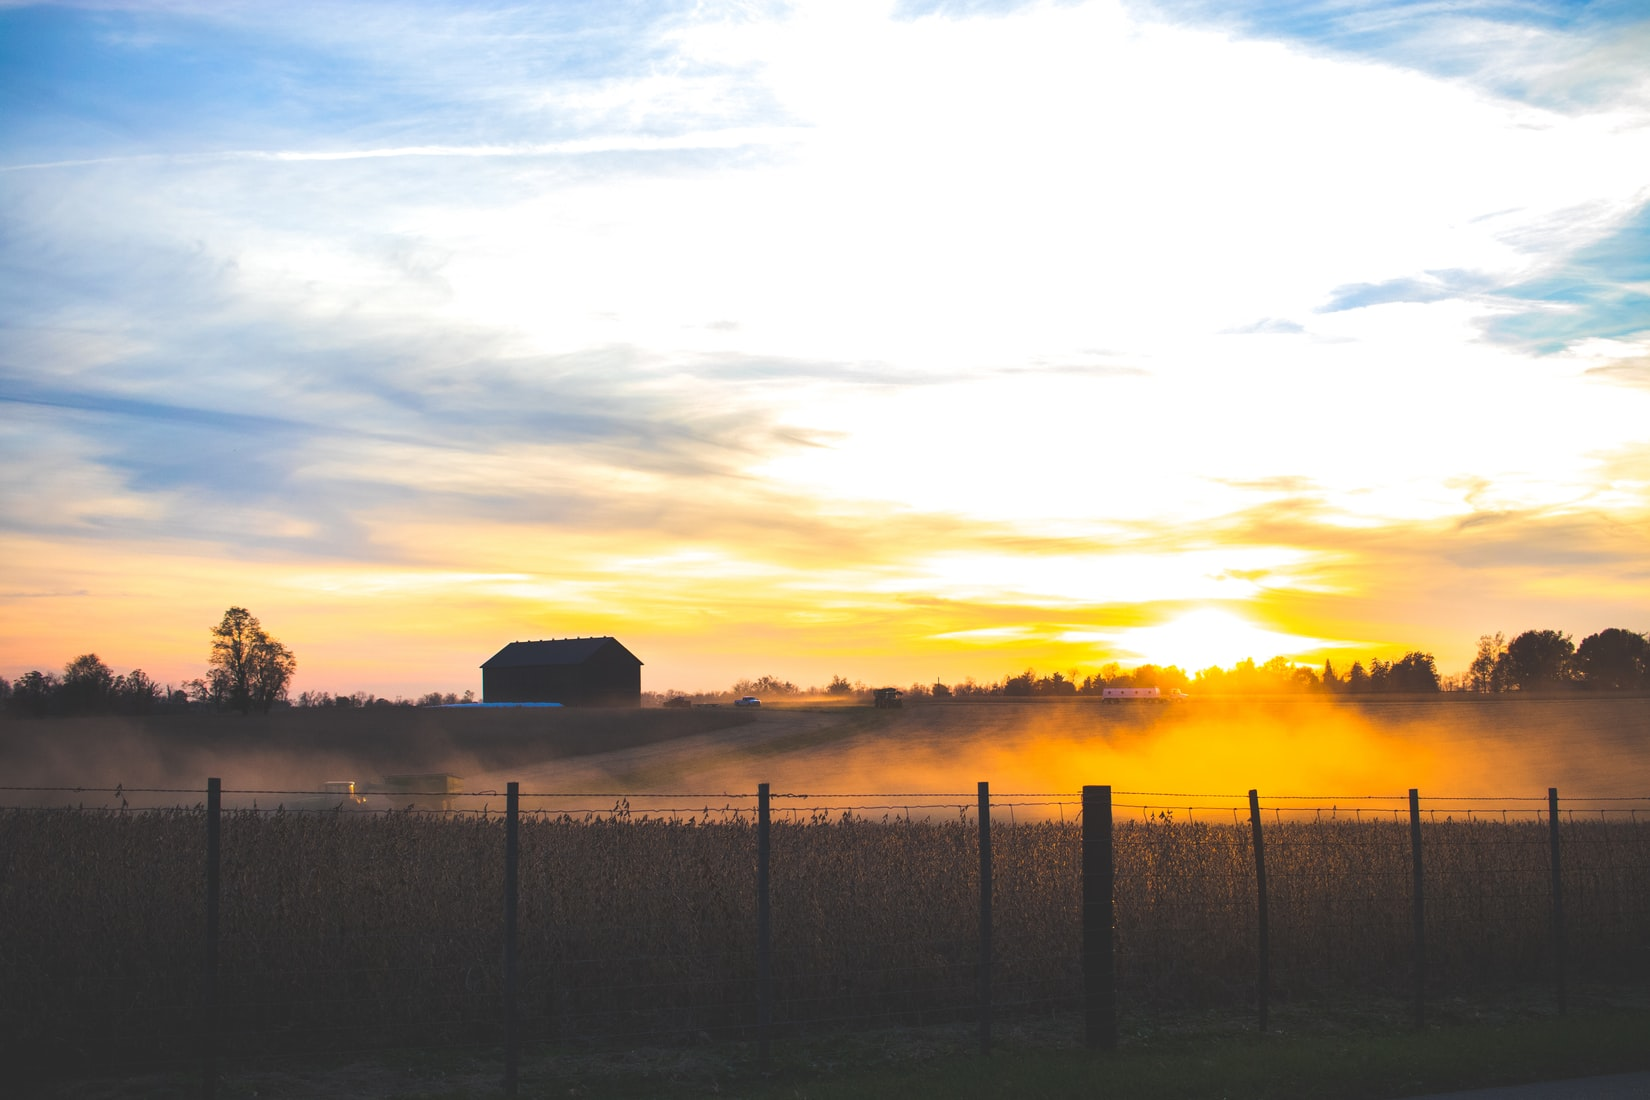 Sunset on fields with a barn in the distance, referring to the title of the novel being discussed.